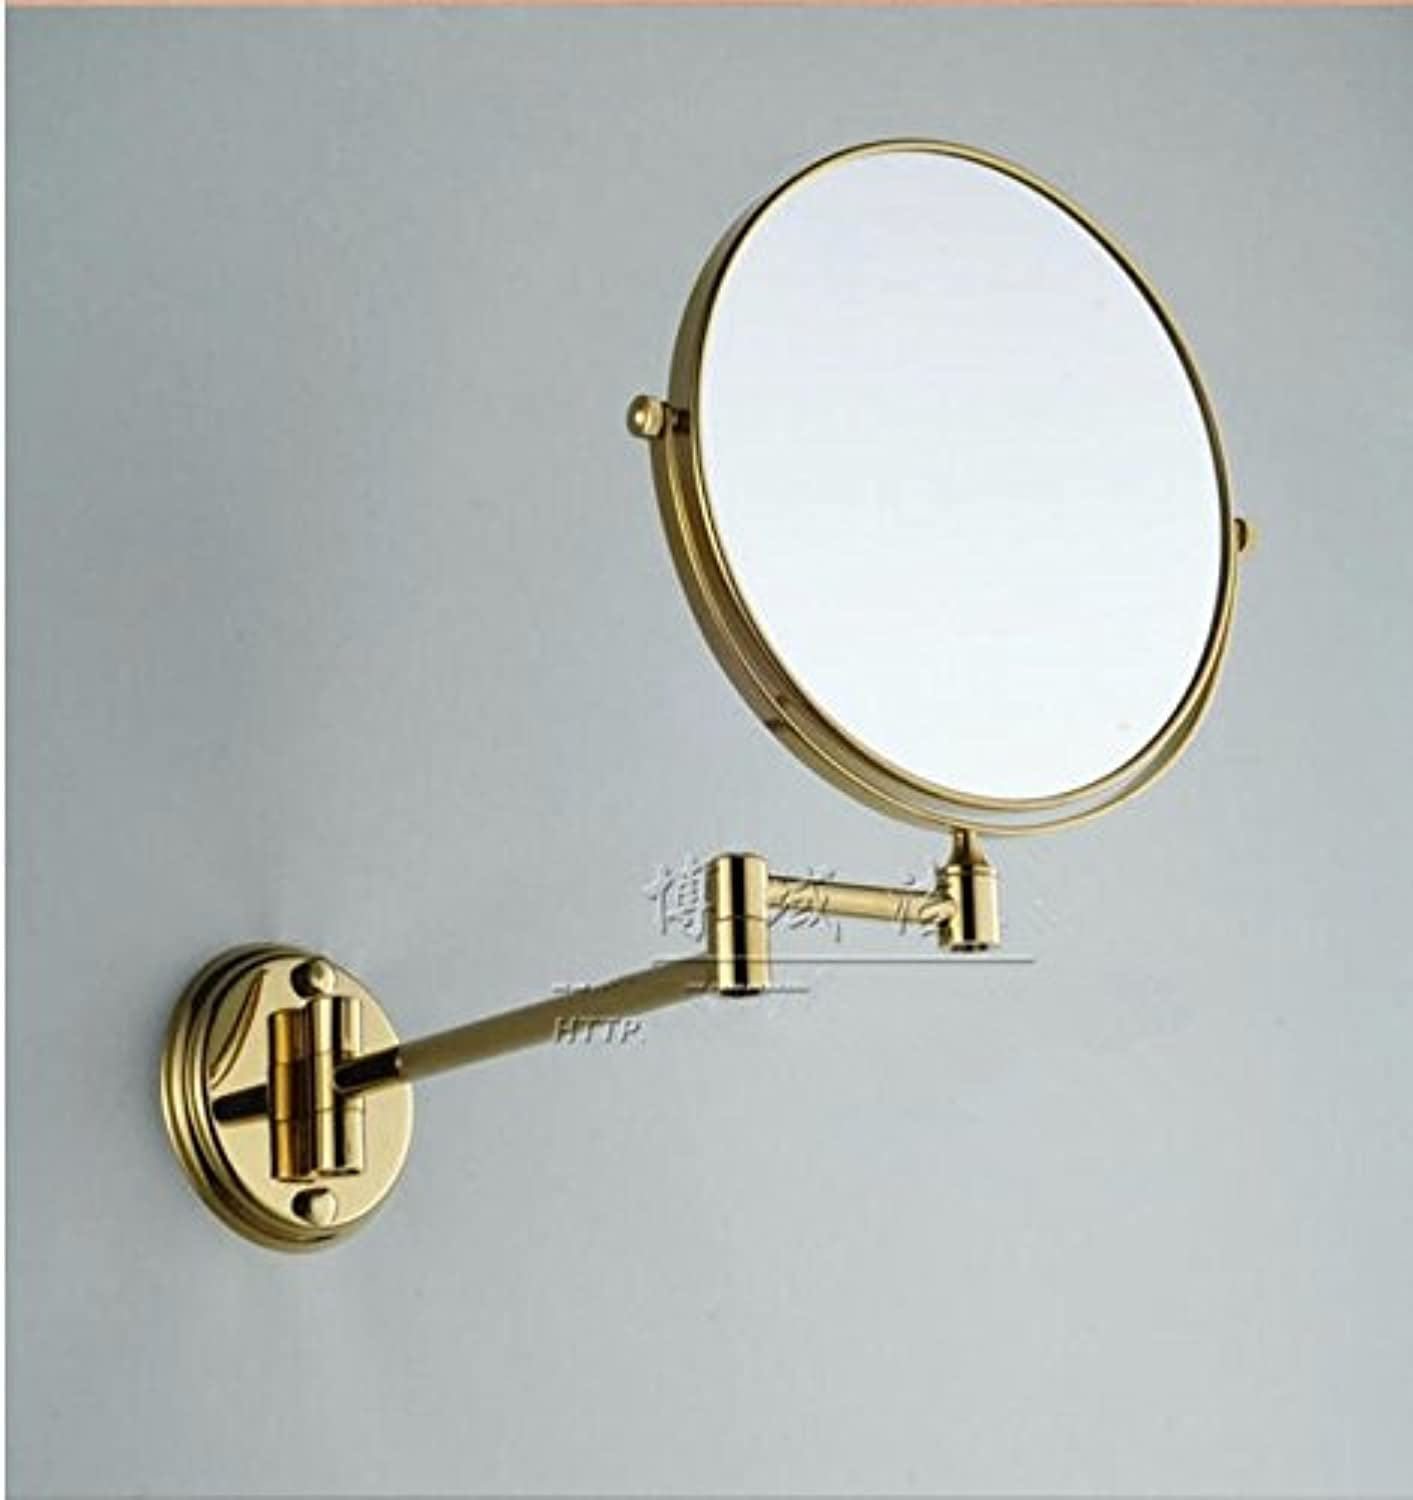 golden copper mirror wall mount bathroom vanity mirror double-sided folding Magnifier Zoom lens-8 inch Titanium gold